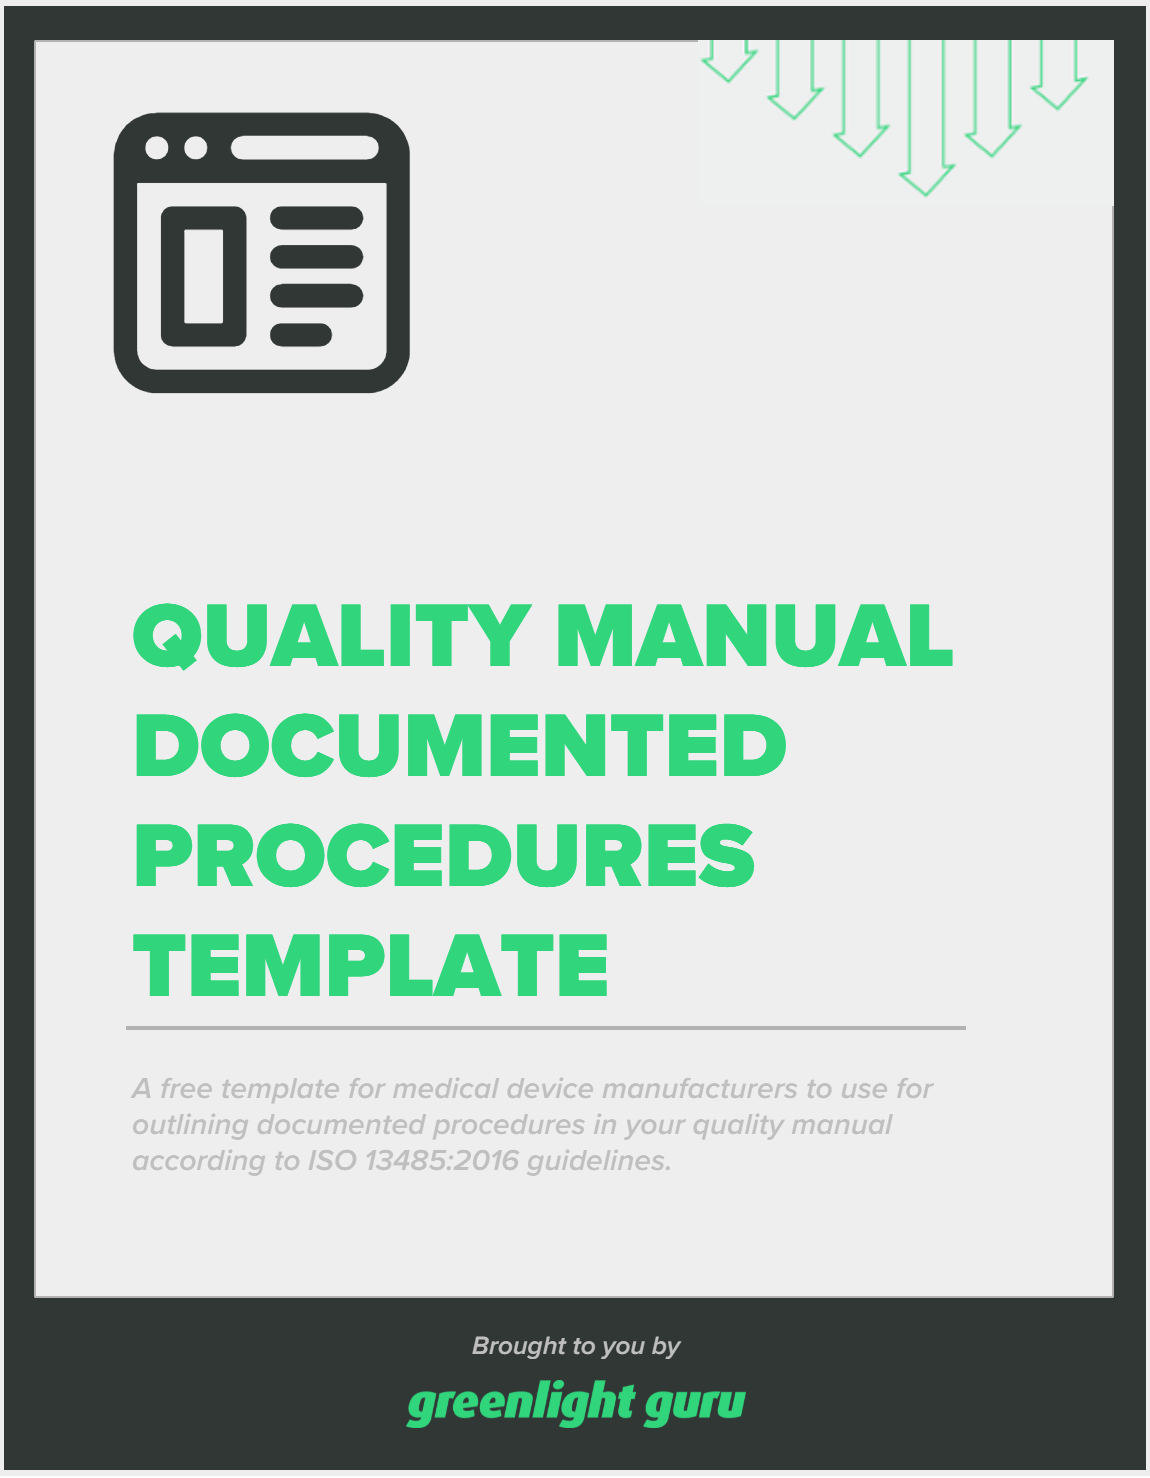 Quality Manual Documented Procedures Template - slide-in cover (1)